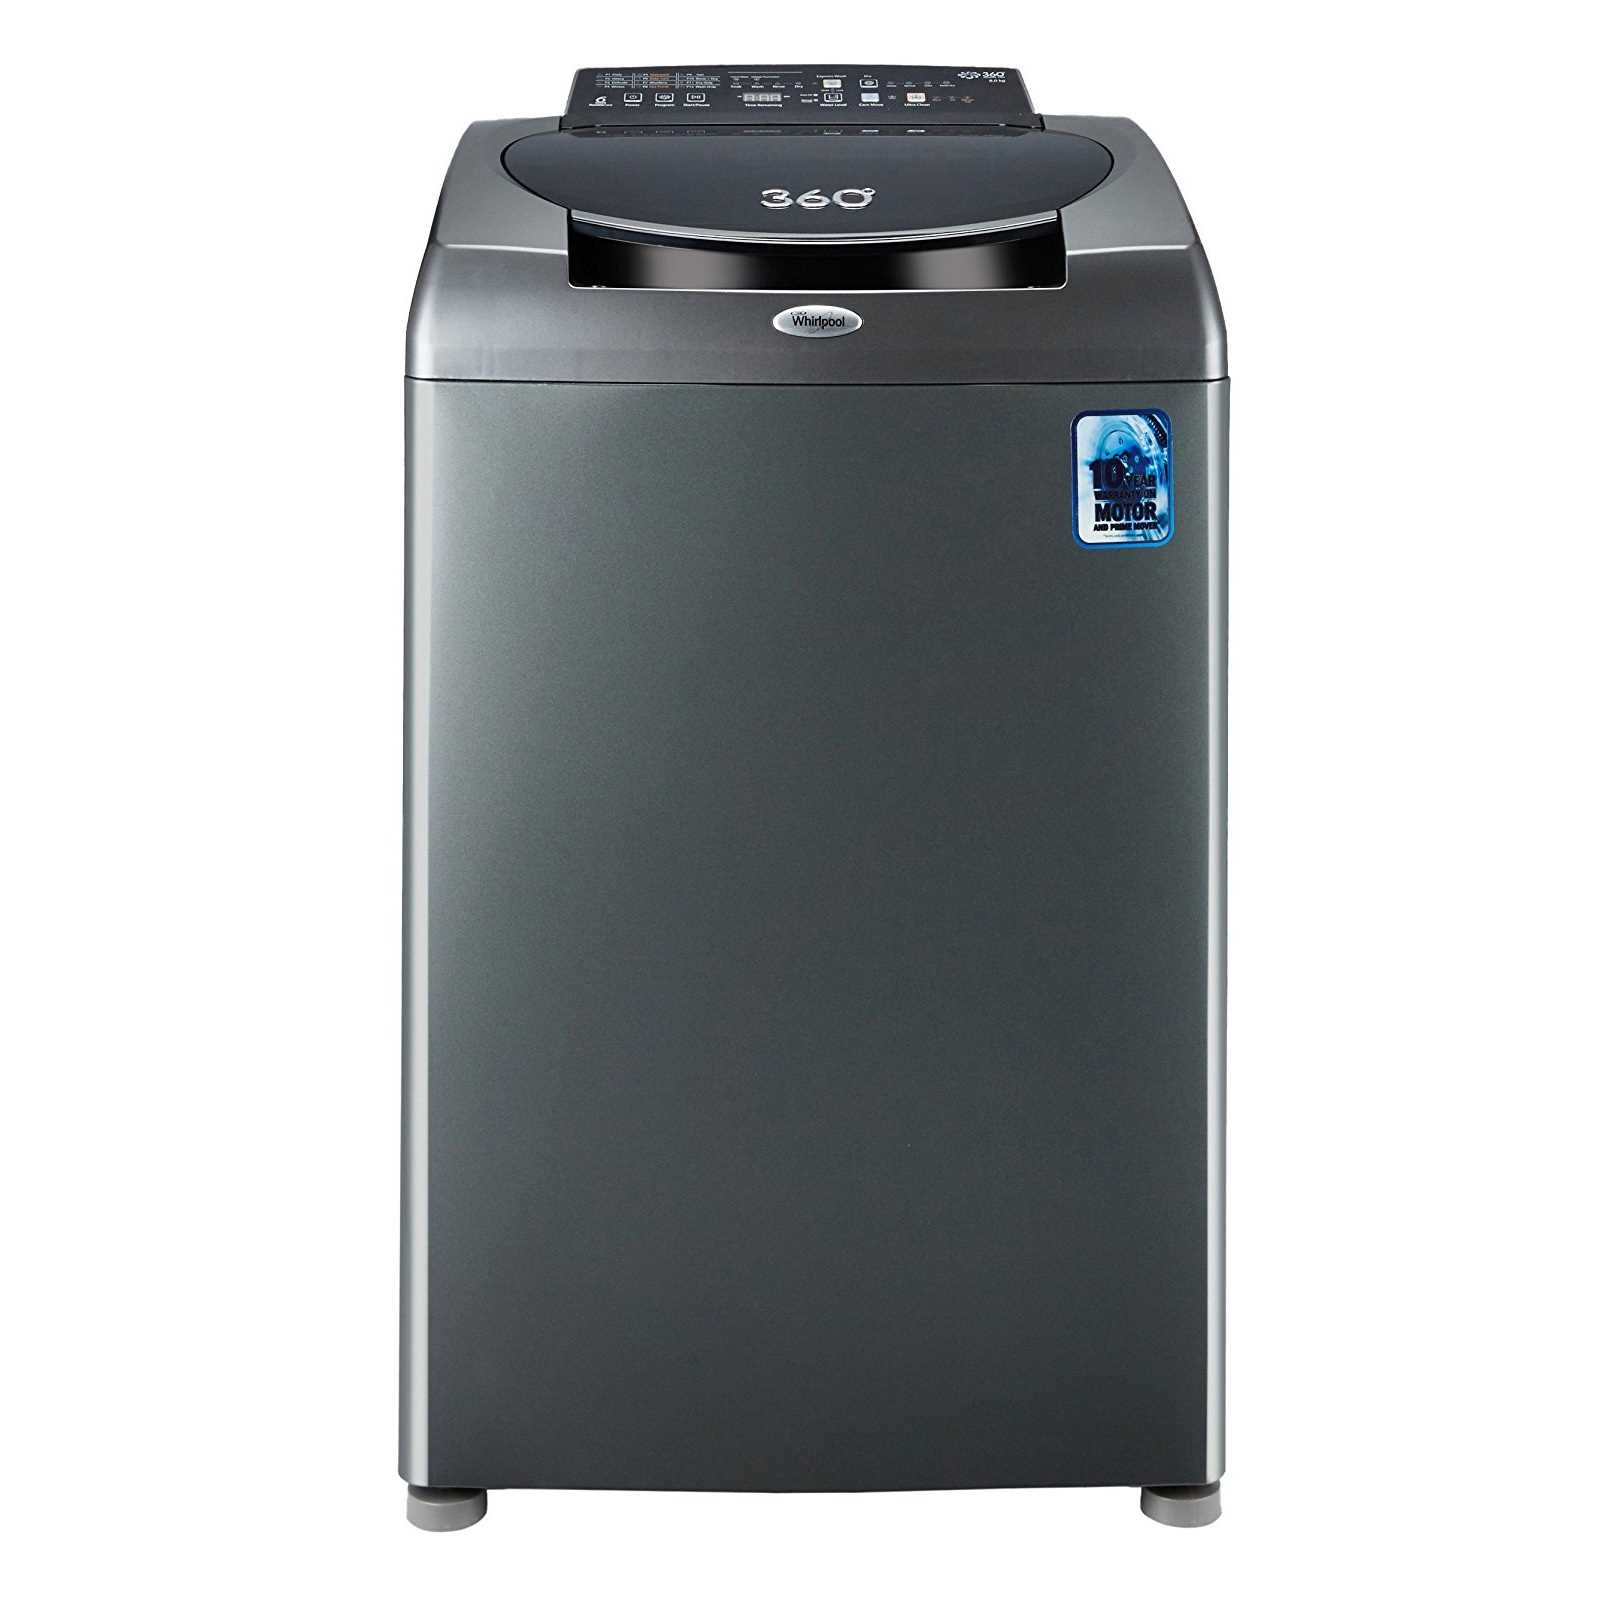 Whirlpool 360° Bloomwash Ultimate Care 8 Kg Fully Automatic Top Loading Washing Machine